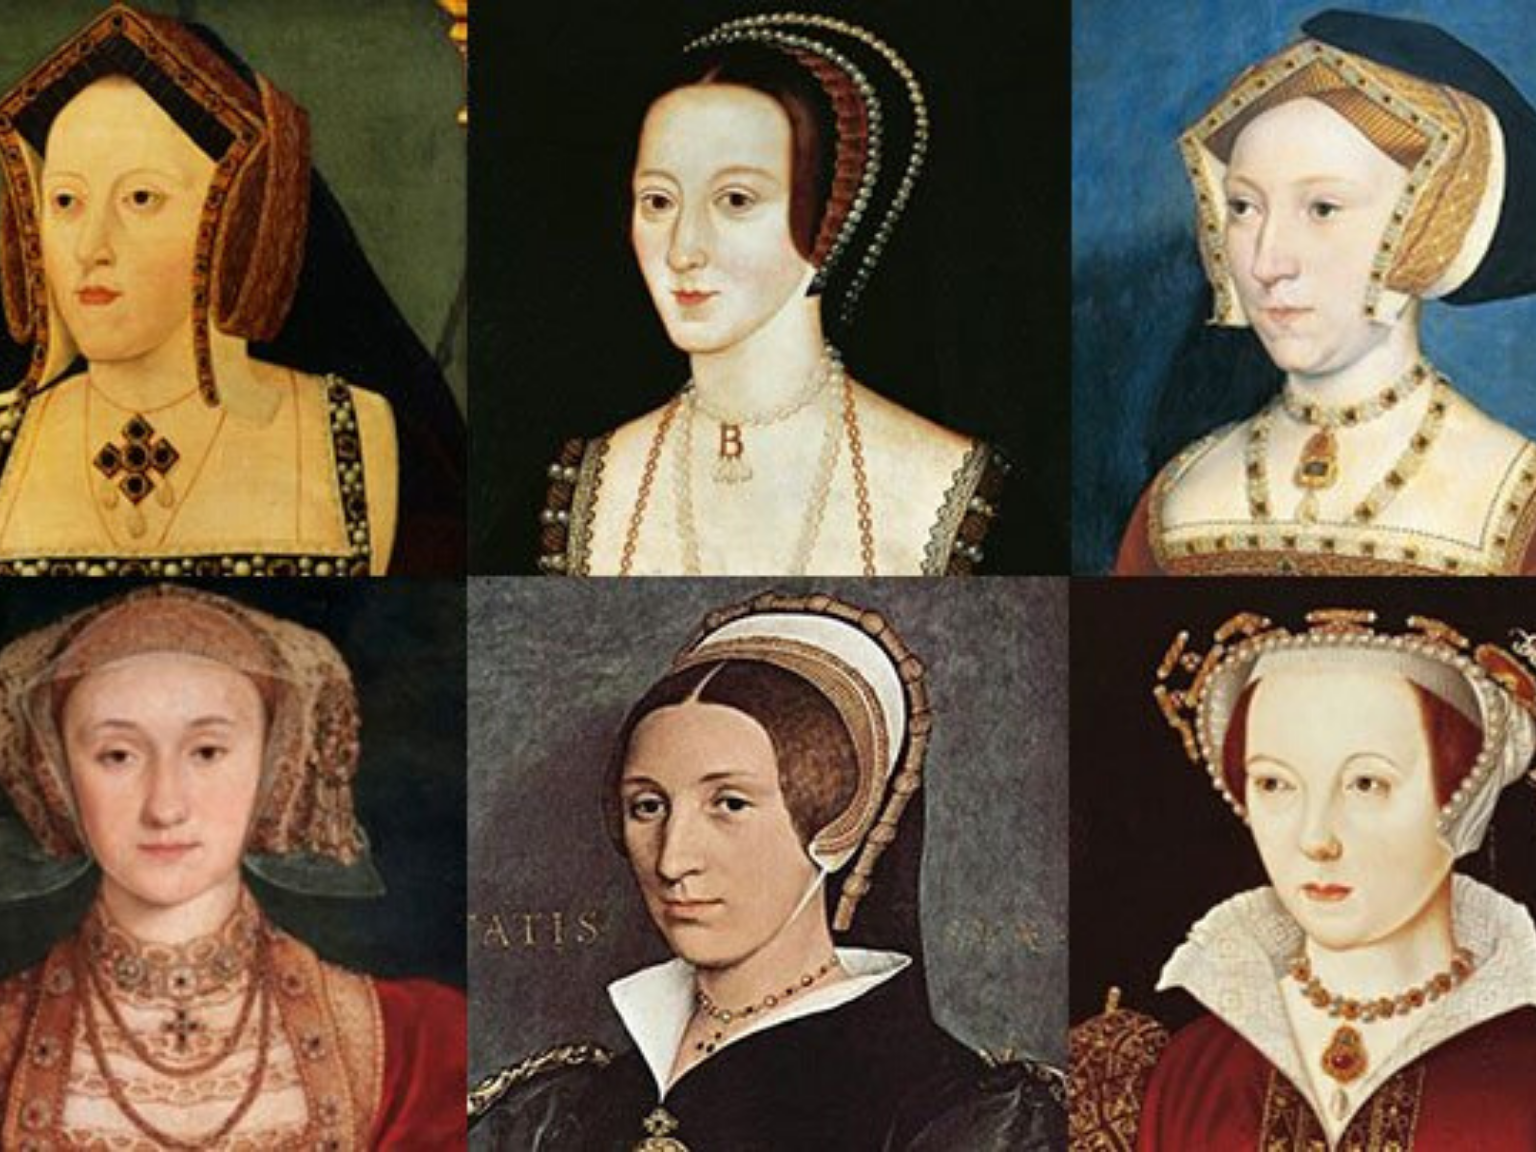 Henry VIII's six wives